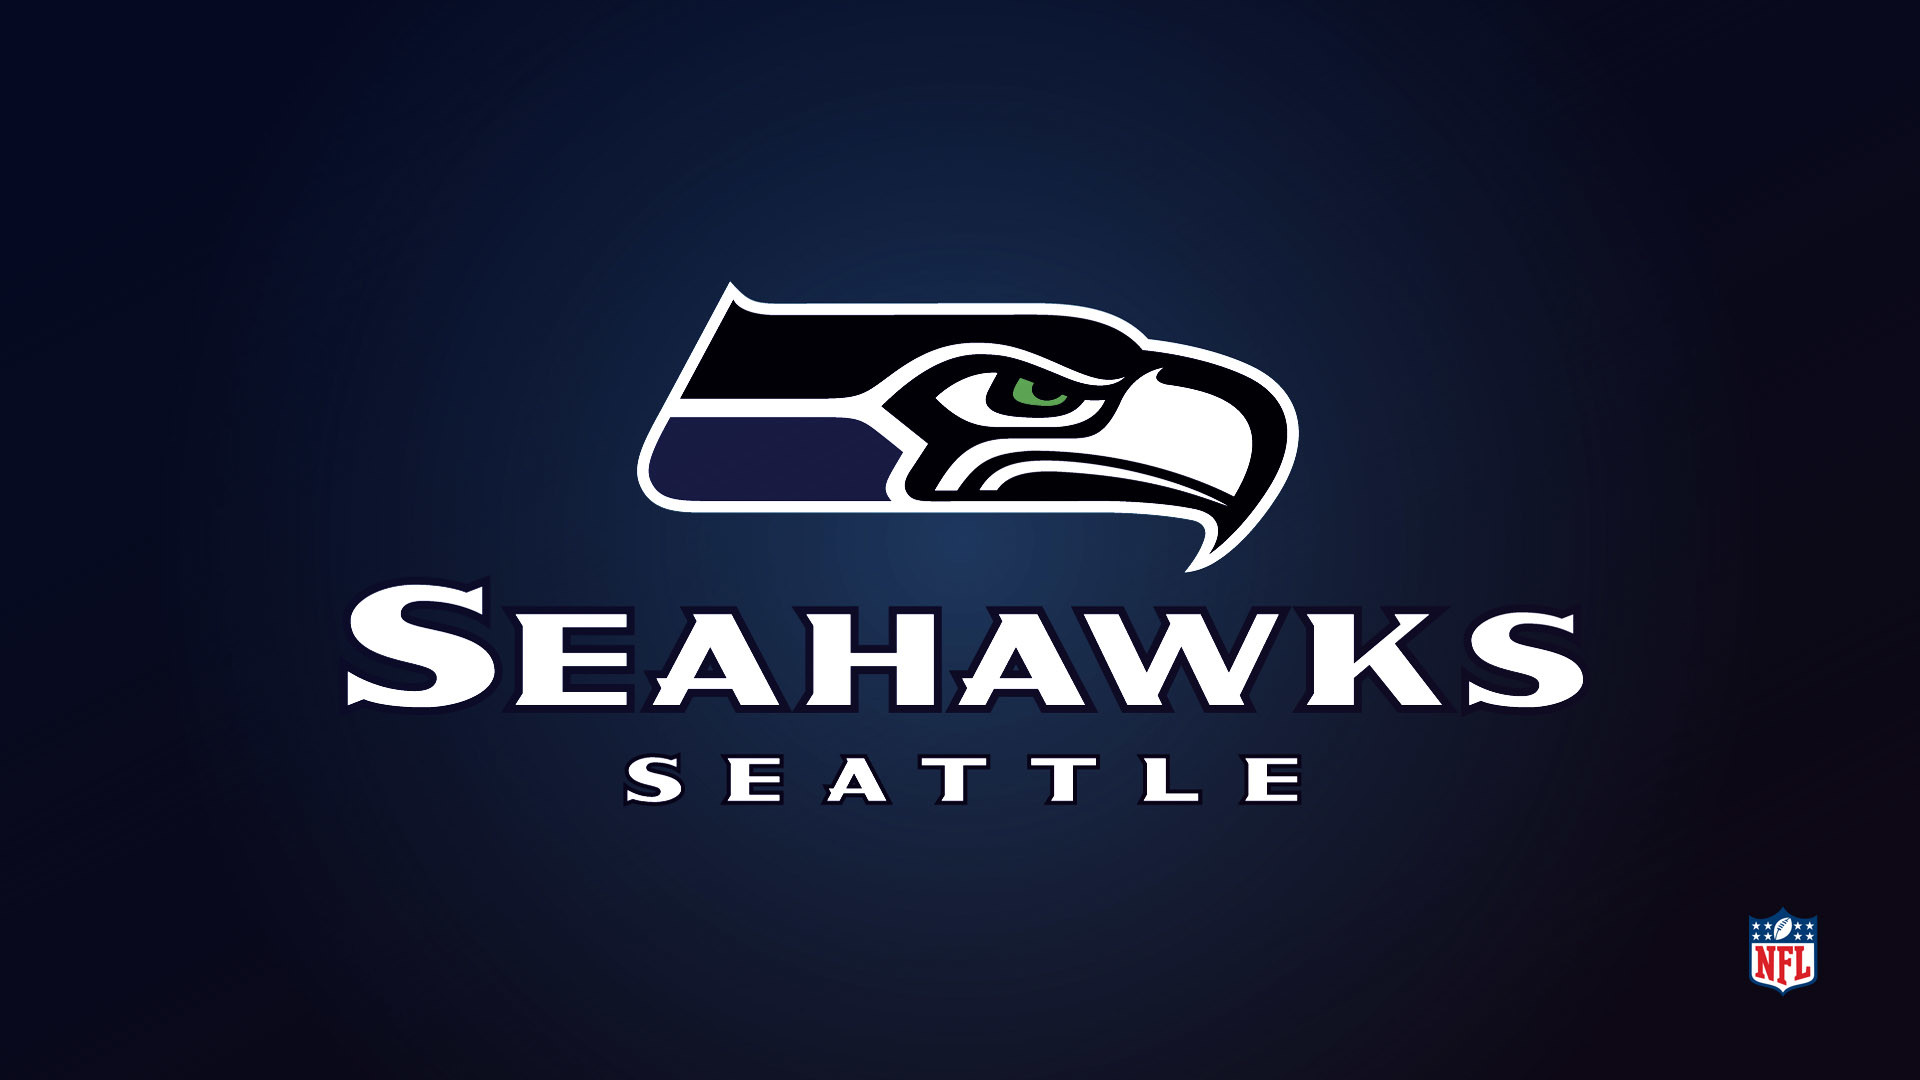 Seahawks Wallpaper. 1920×1080. Rockstar Logo Wallpaper 1600×1200